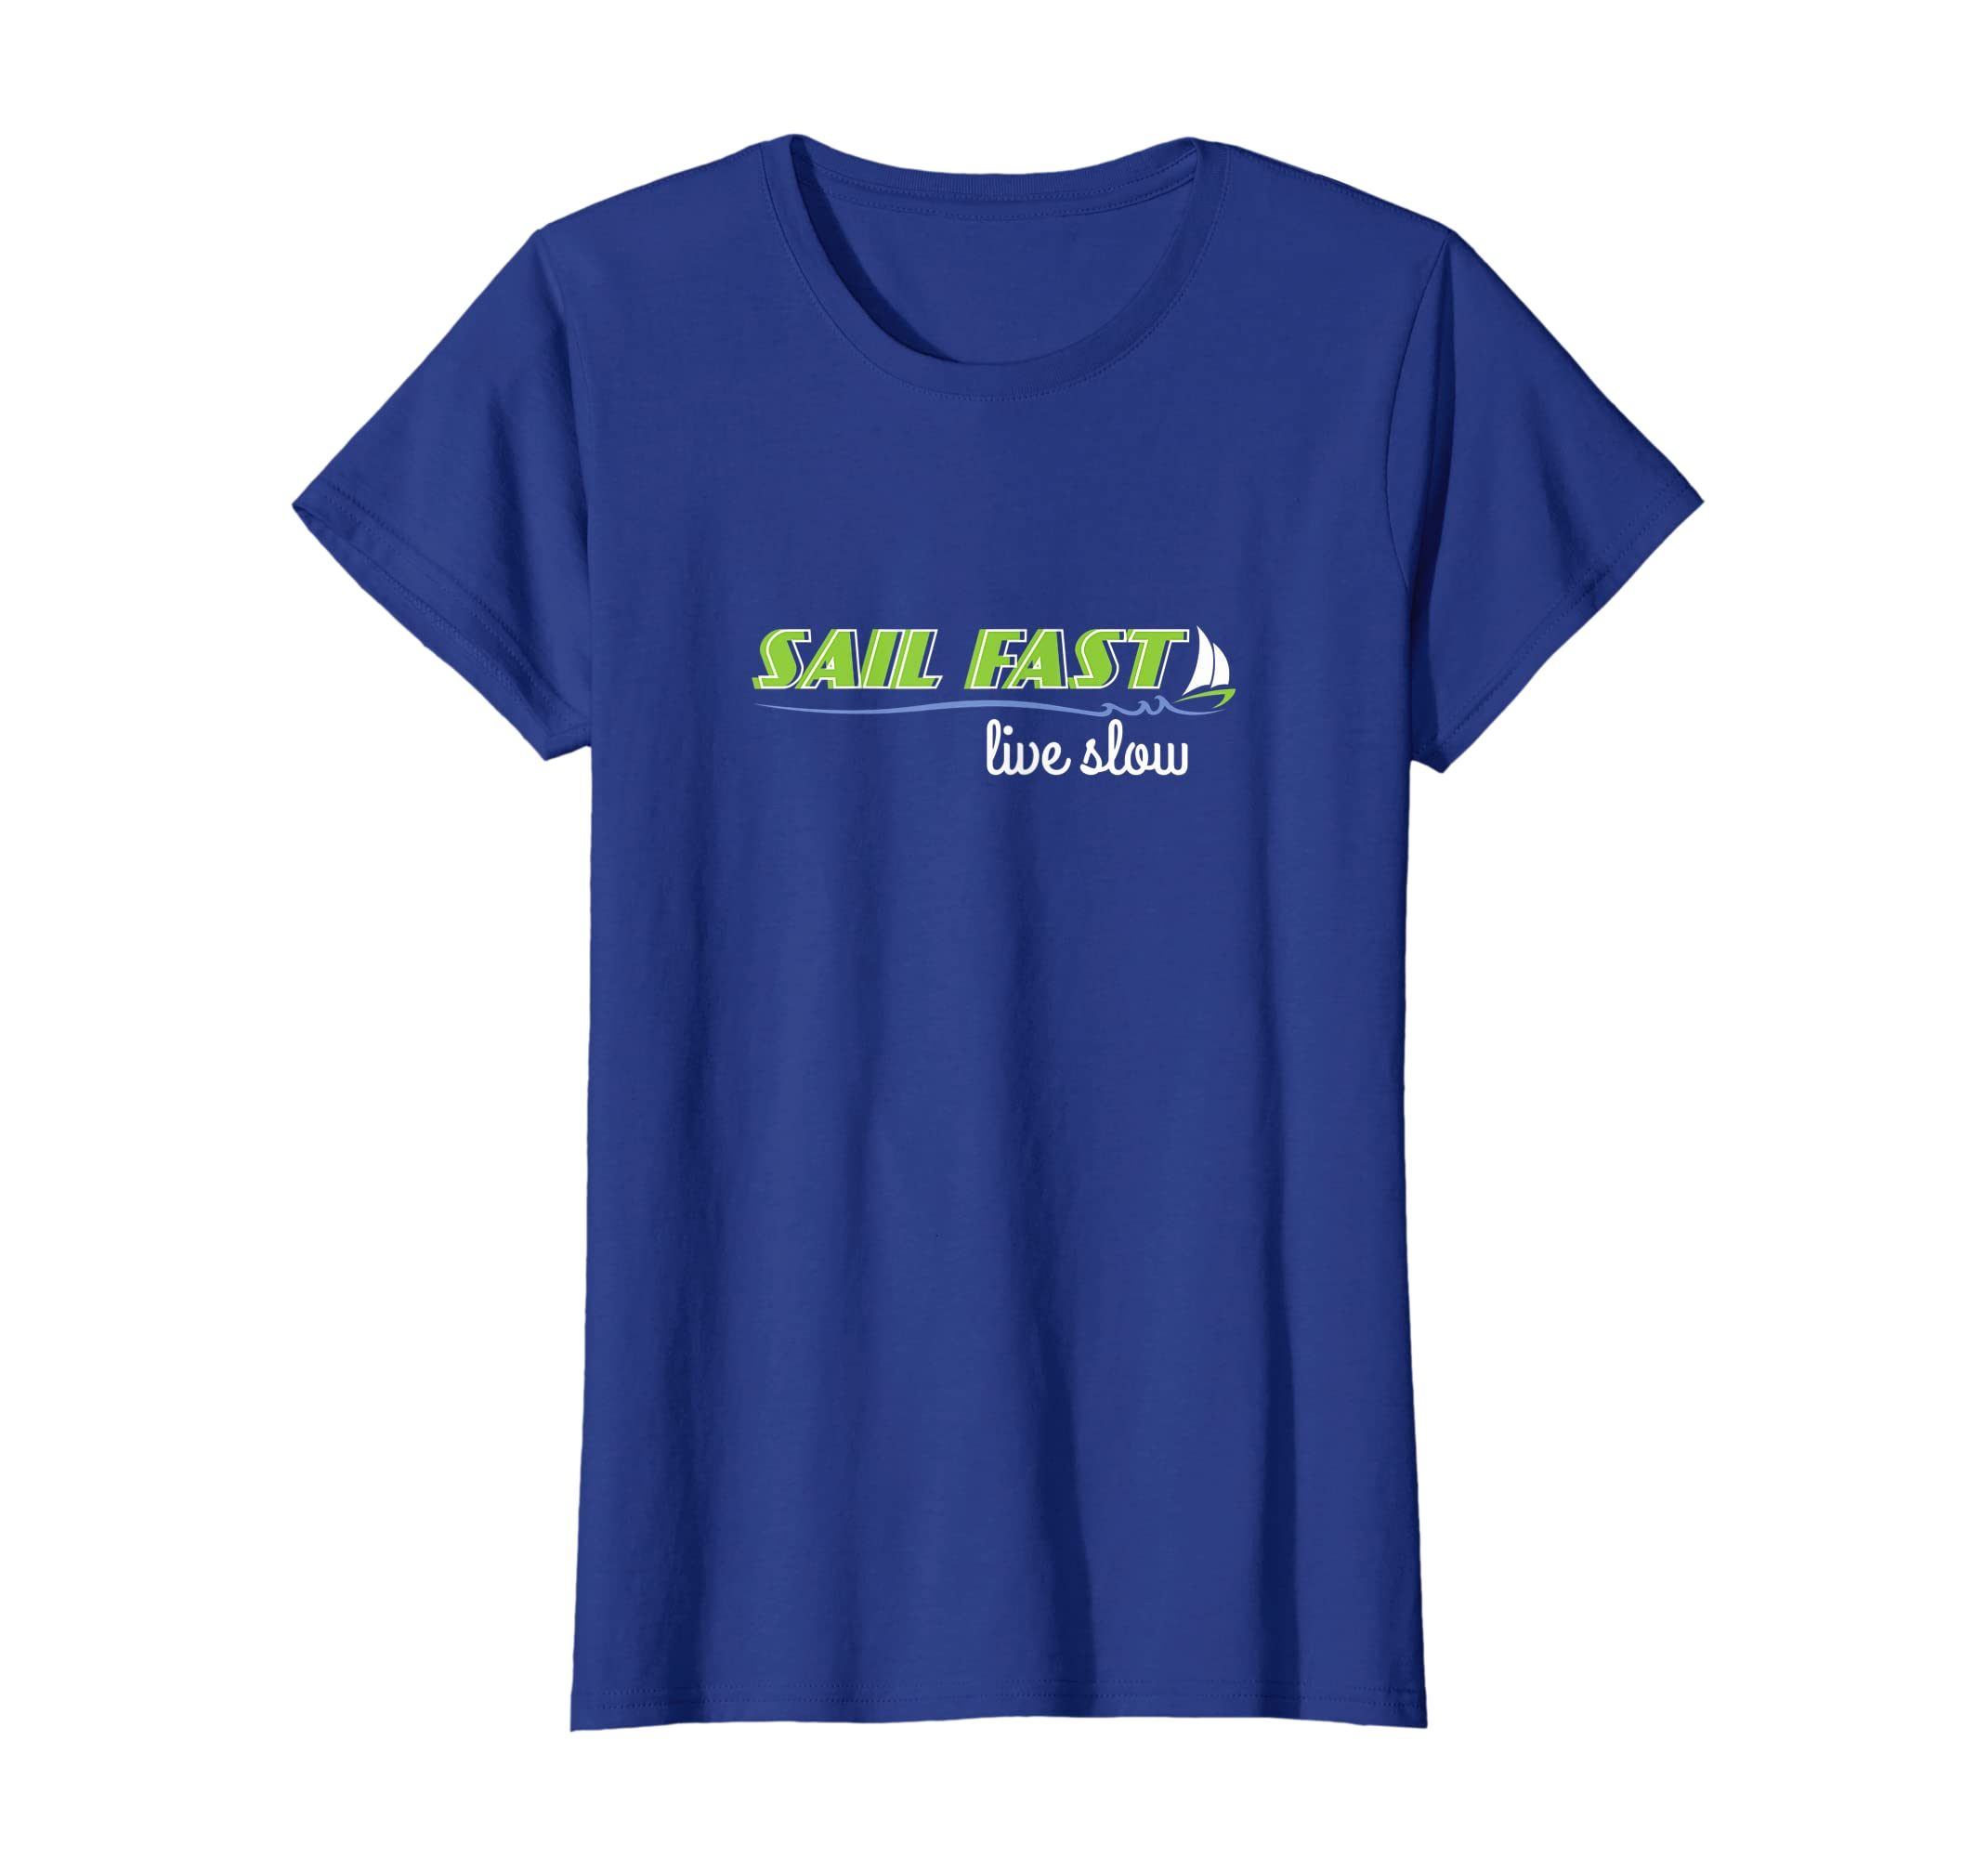 72c5b1f50e Amazon.com: SAIL FAST, LIVE SLOW | Funny Sailboat Sailing Regata T-shirt:  Clothing